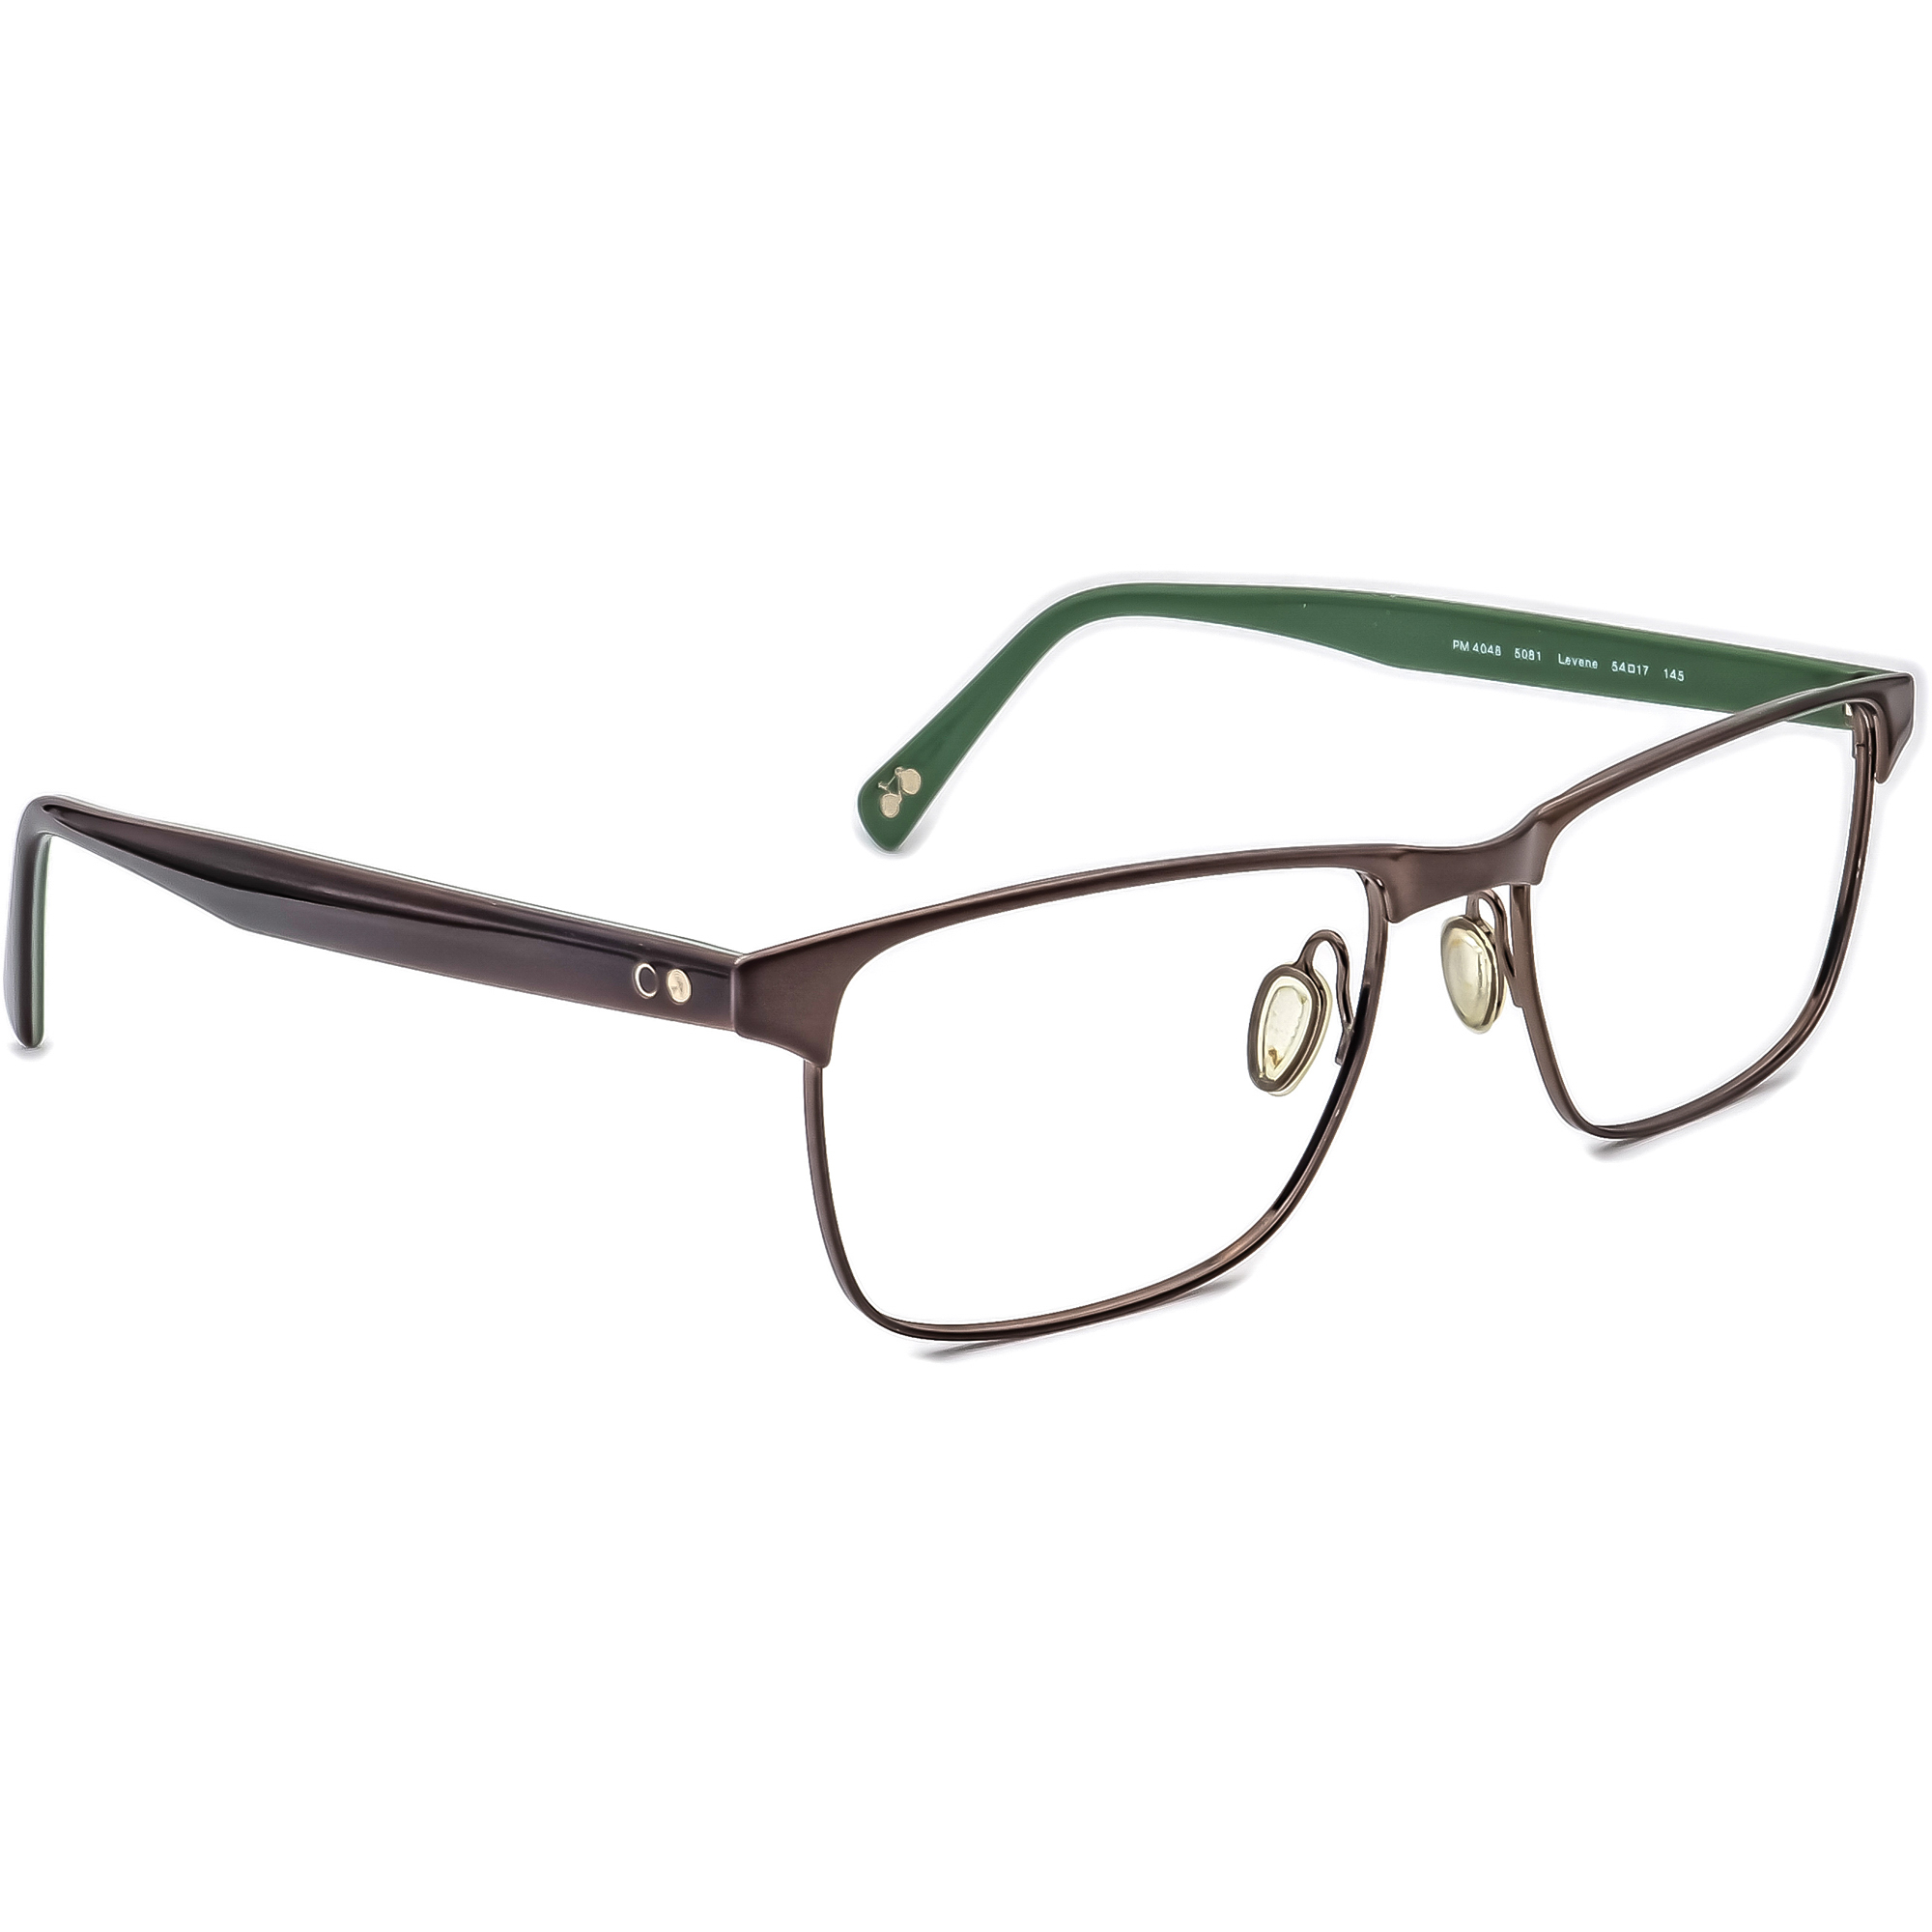 Paul Smith Eyeglasses PM 4048 5081 Brown/Green Frame Italy 54[]17 145 Handmade